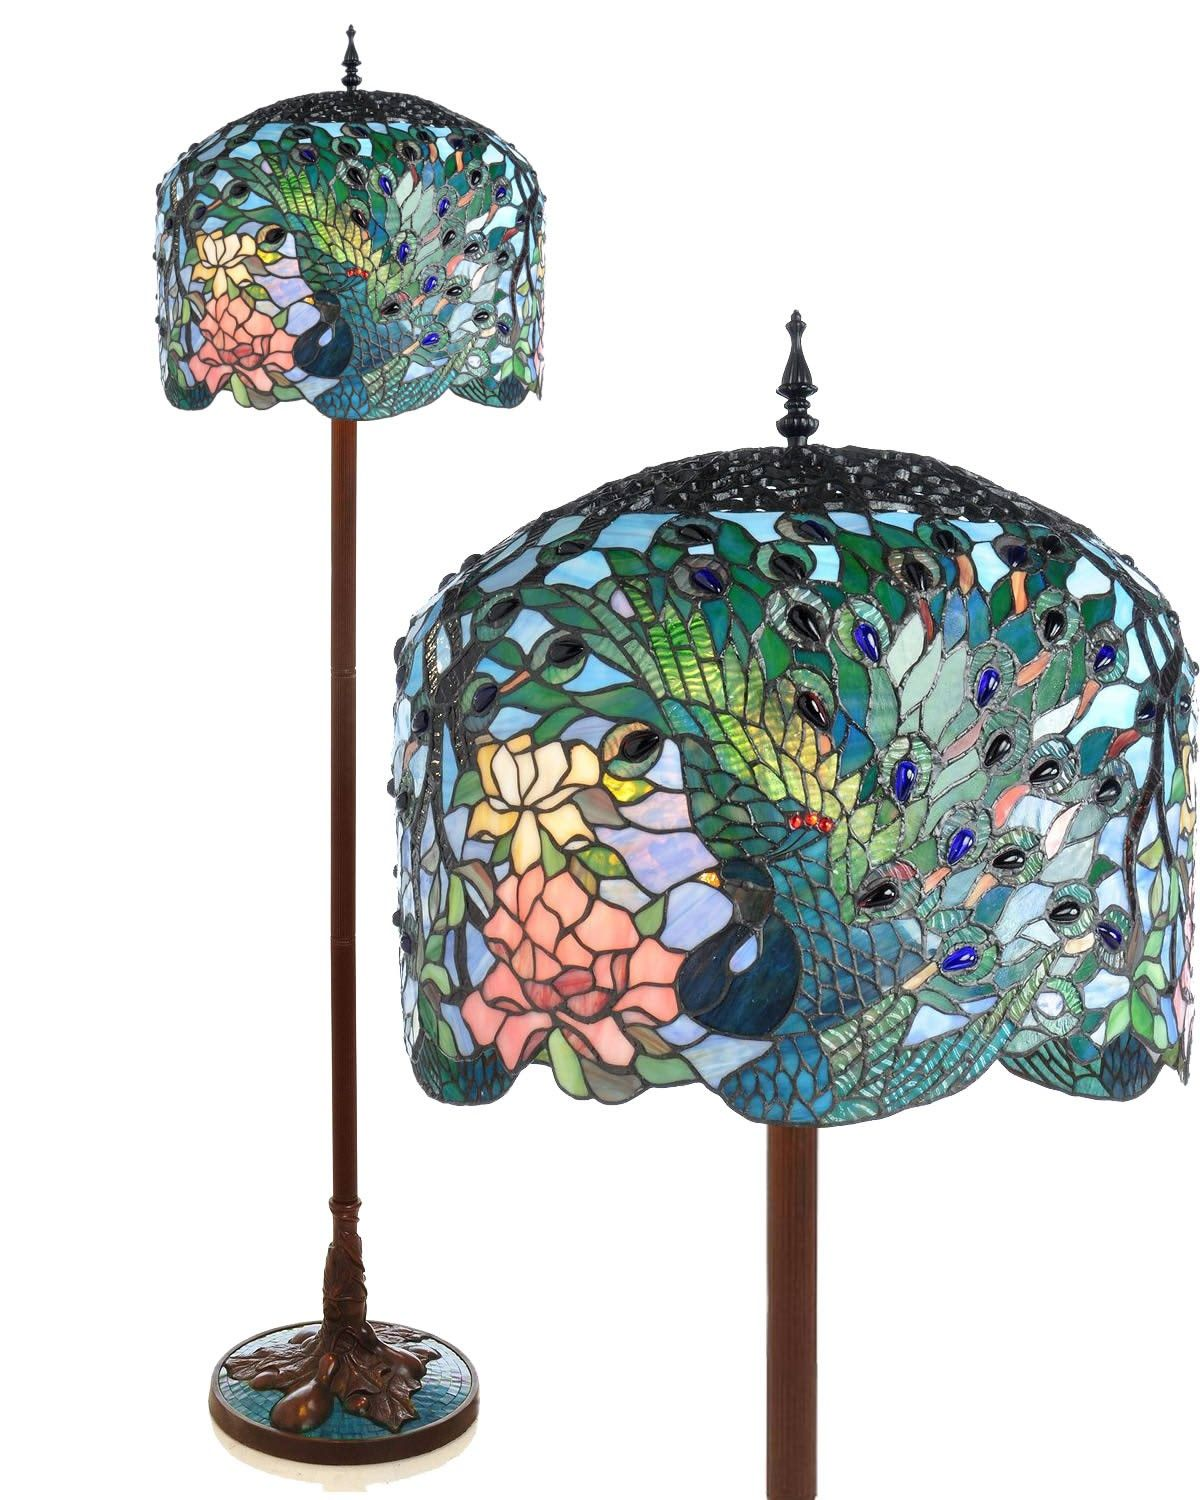 Floor Lamps Tiffany: 17 Best images about Tiffany Lamps on Pinterest   Wisteria, Tiffany lamps  and Jack skellington,Lighting